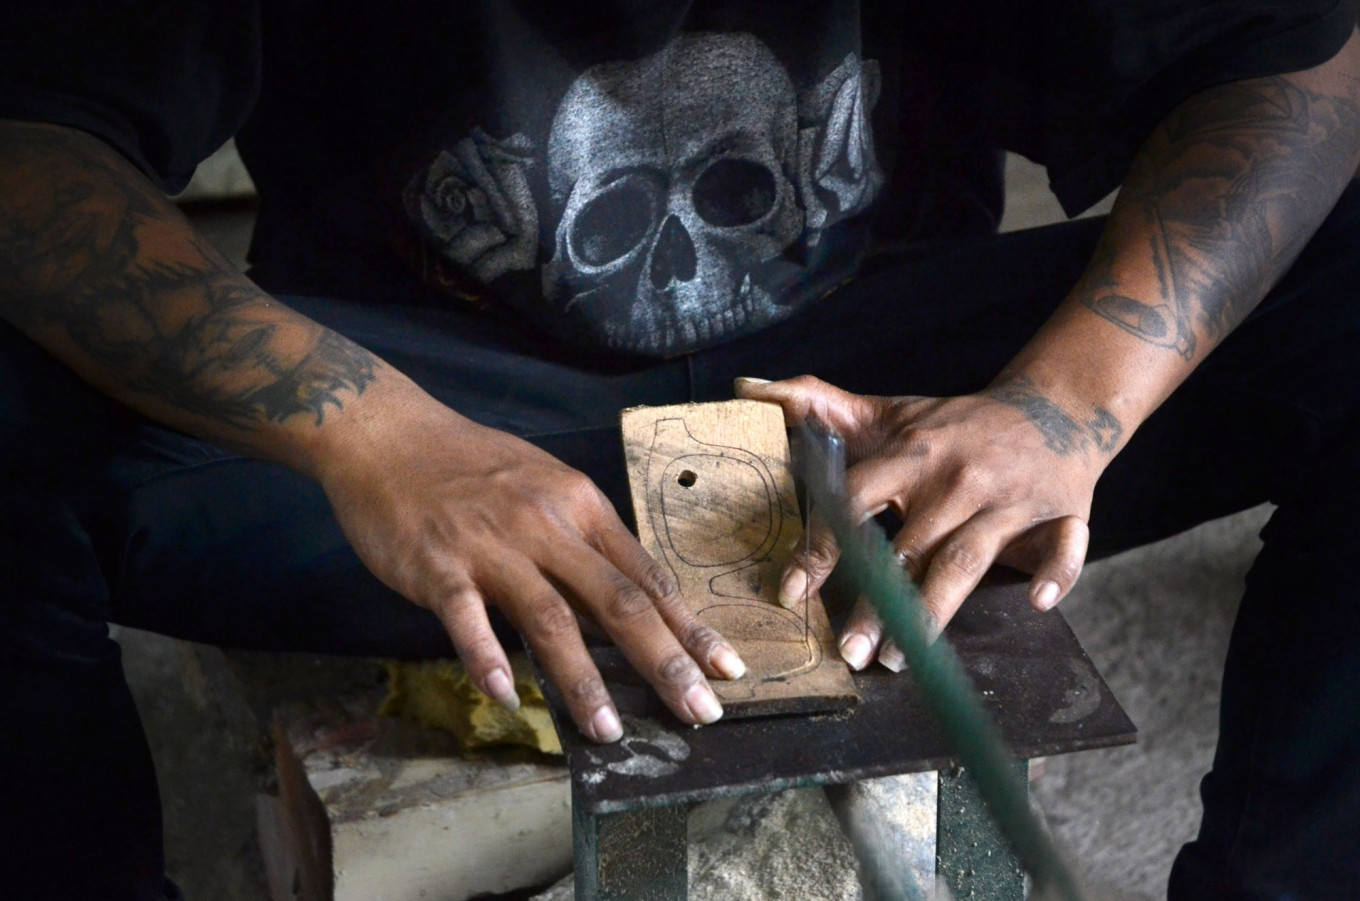 A man cuts a piece of wood following a drawn pattern in a home workshop in Malang East, Java, on Aug. 15. The frames are sold online and the buyers come from Jakarta, Surabaya and even the US and Italy. JP/Aman Rochman